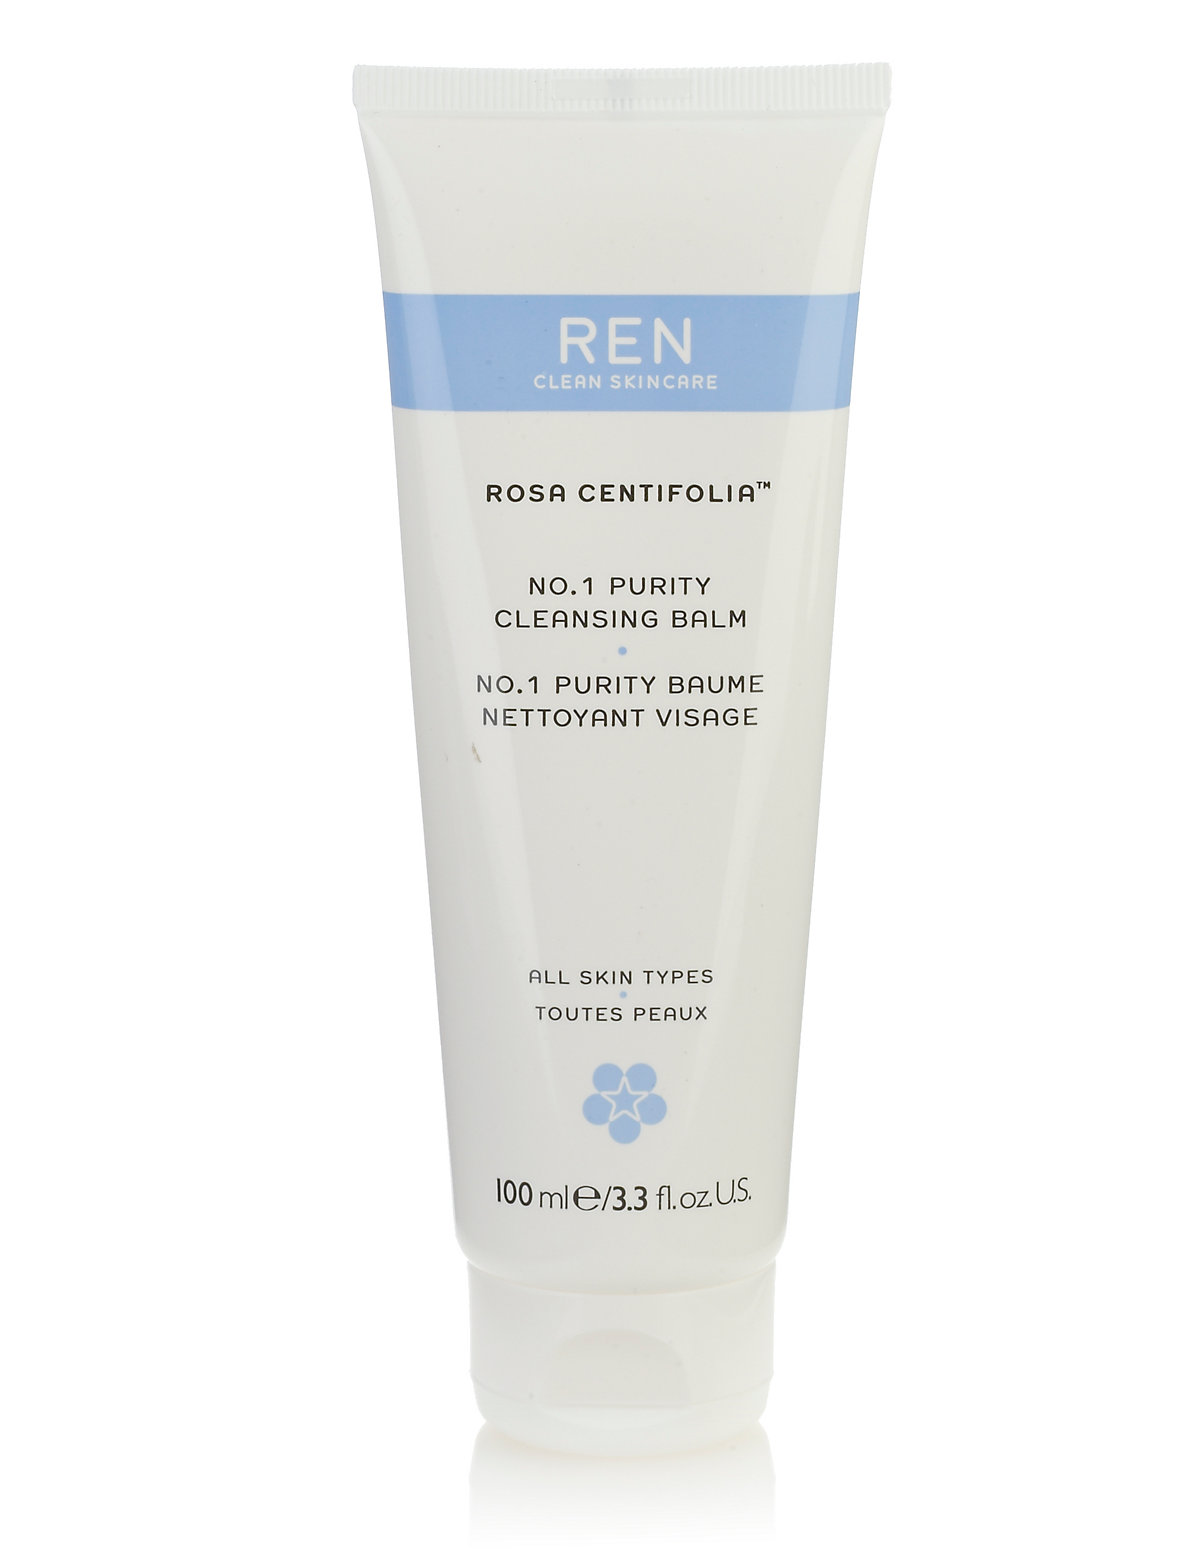 REN Rosa Centifolia No.1 Purity Cleansing Balm 100ml